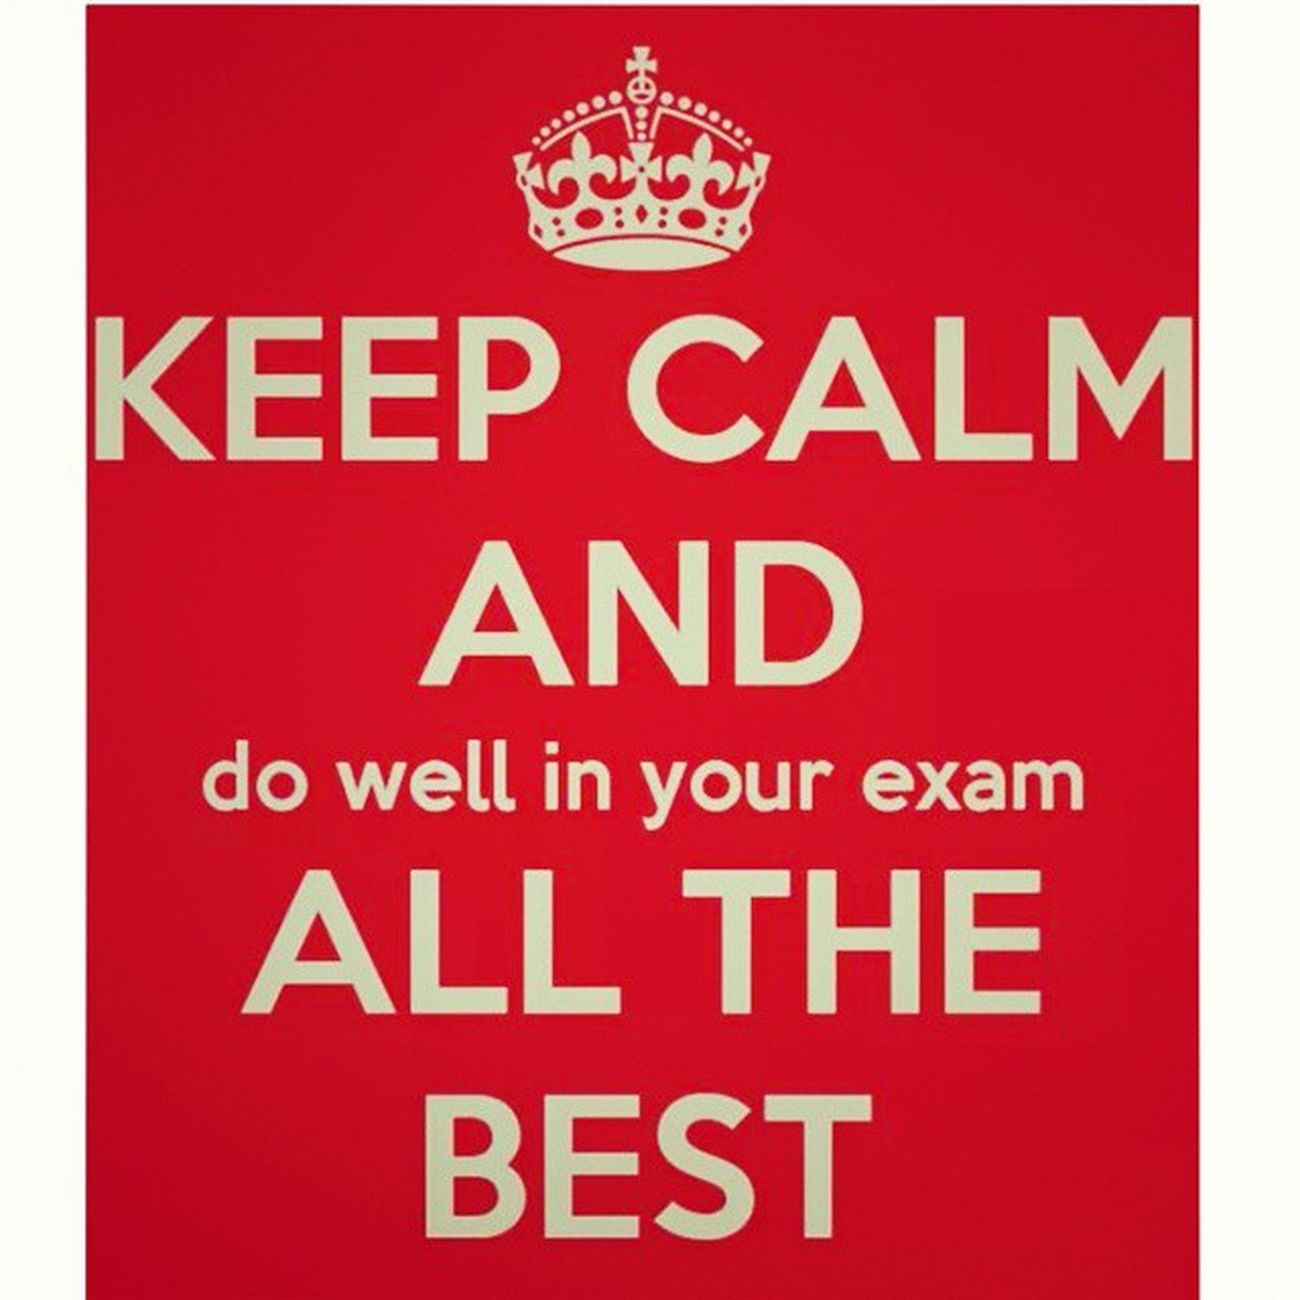 Exams Timetostudy Needsum Inspirational Quotes Instaquote